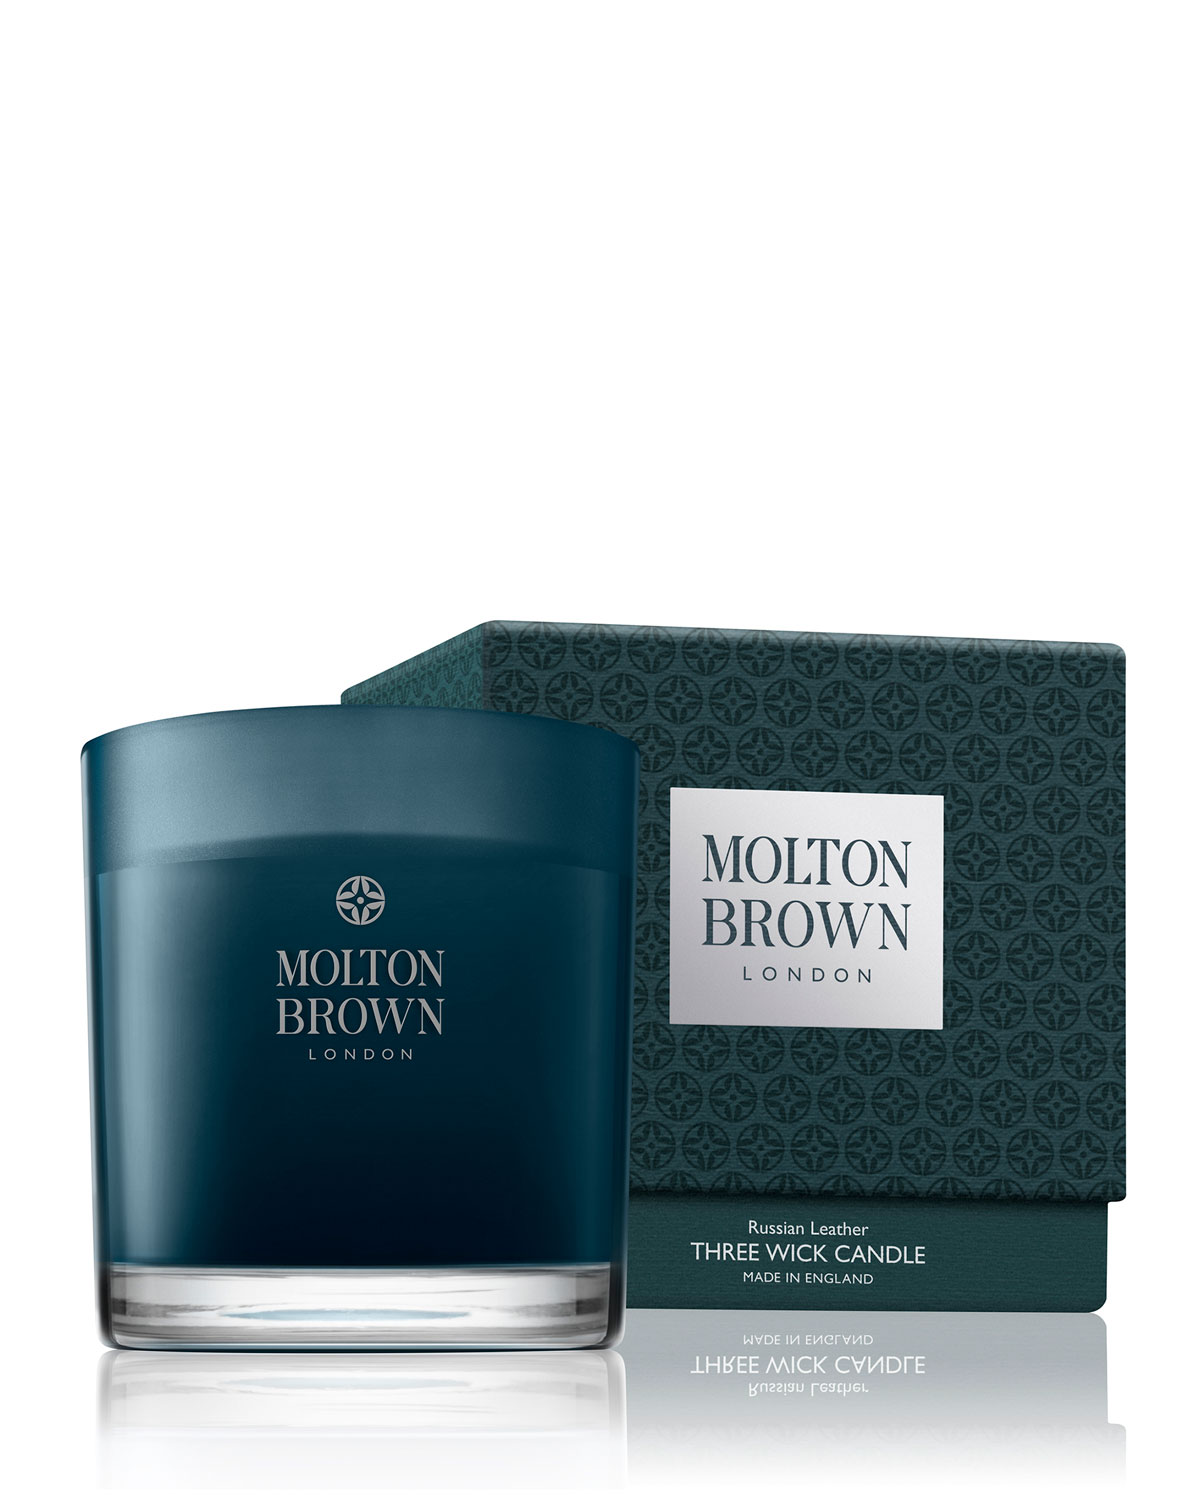 Molton Brown 16.9 oz. Russian Leather Three Wick Candle